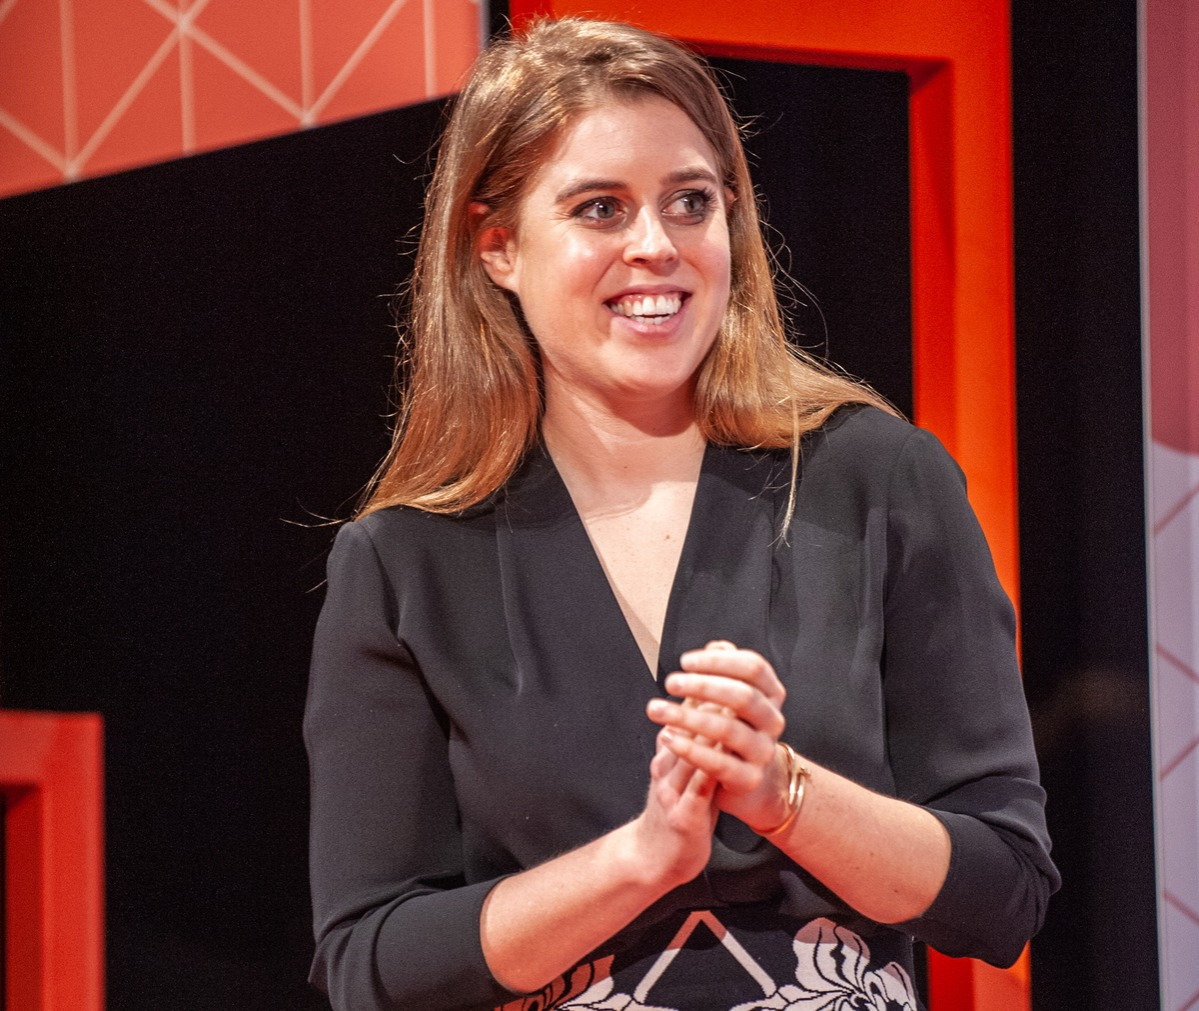 Princess Beatrice of York attends a conference at the Mobile World Congress 2019